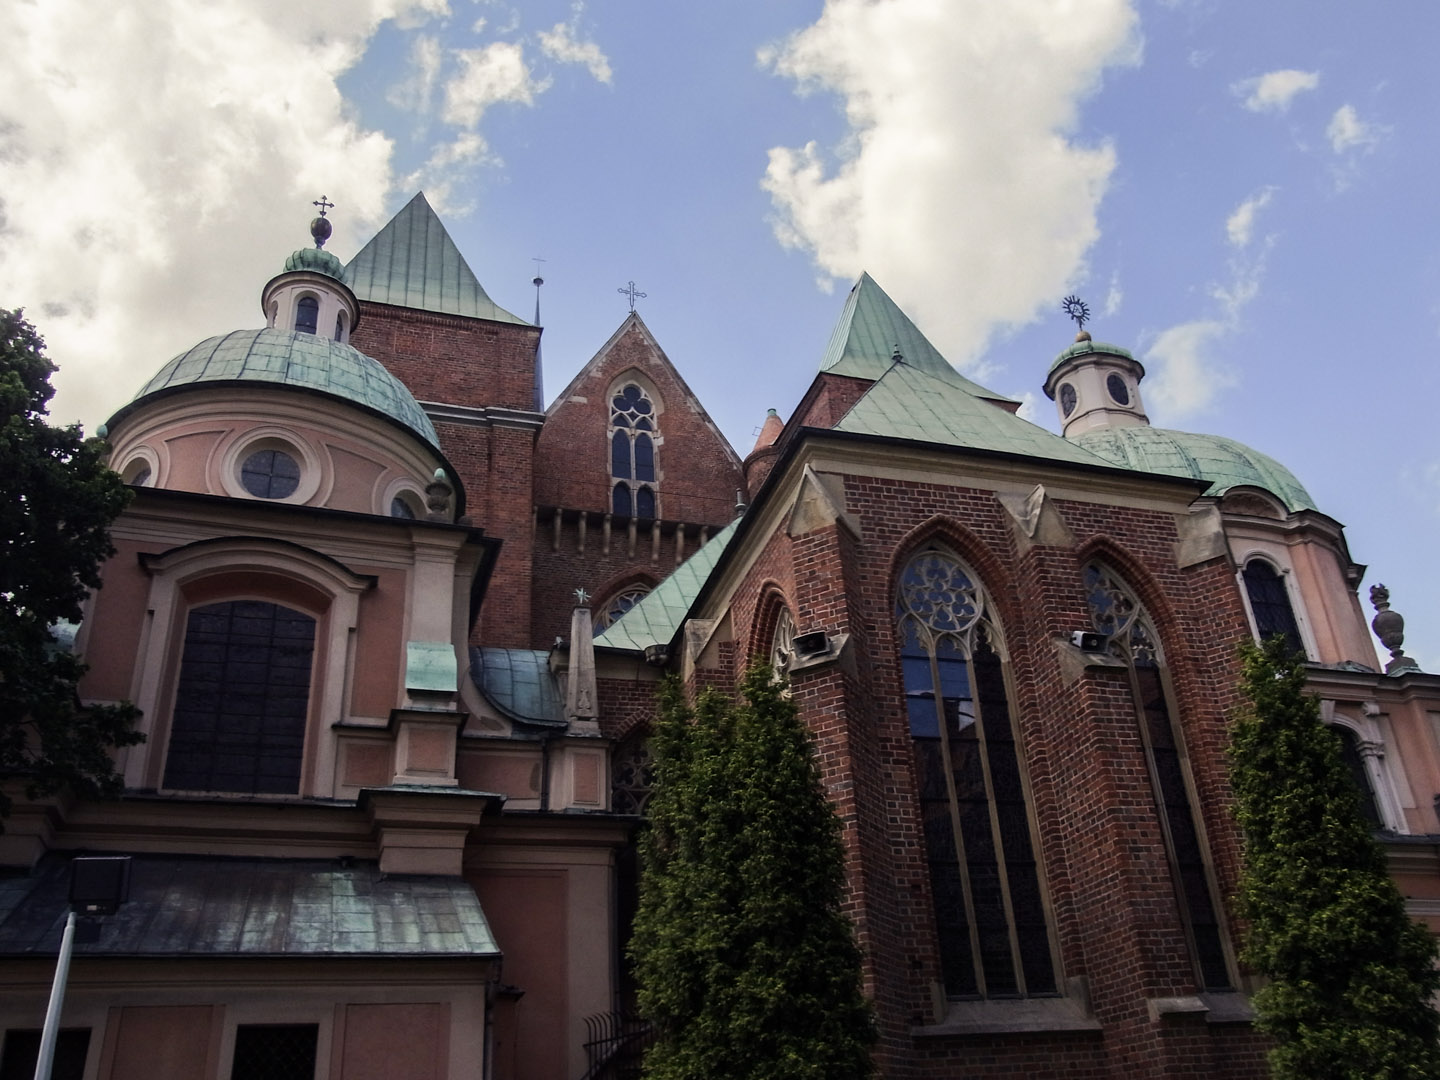 Cathedral of St. John the Baptist (Katedra św. Jana Chrzciciela)